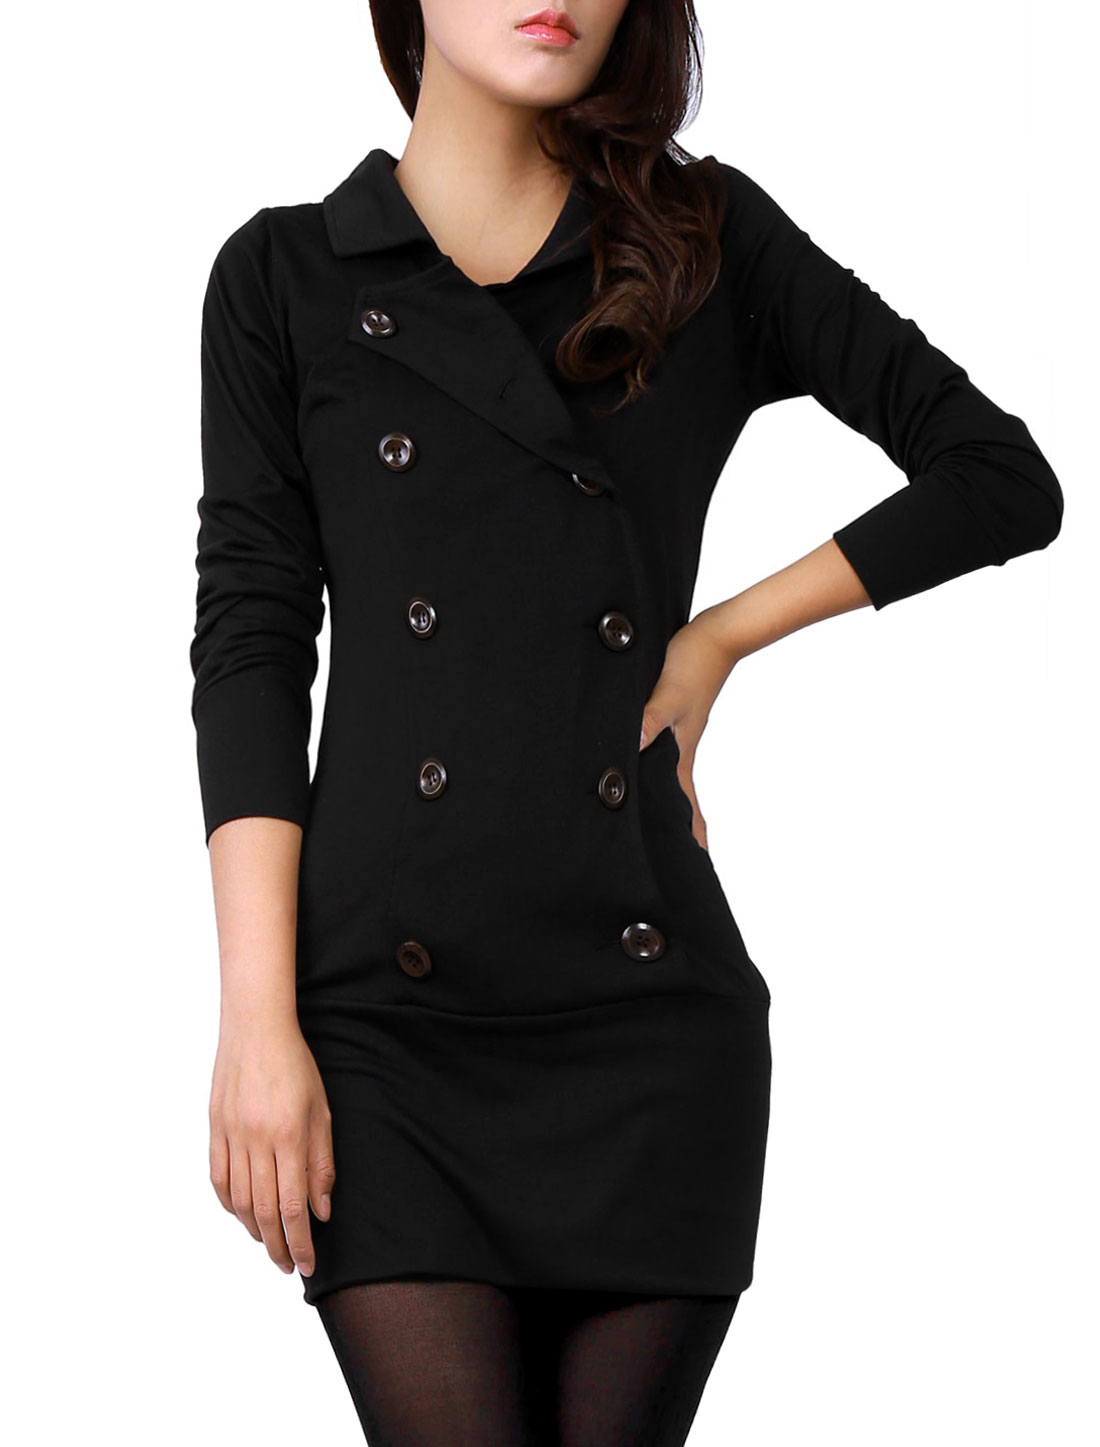 Women Black Convertible Collar Double Breast Long Sleeve Autumn Dress M